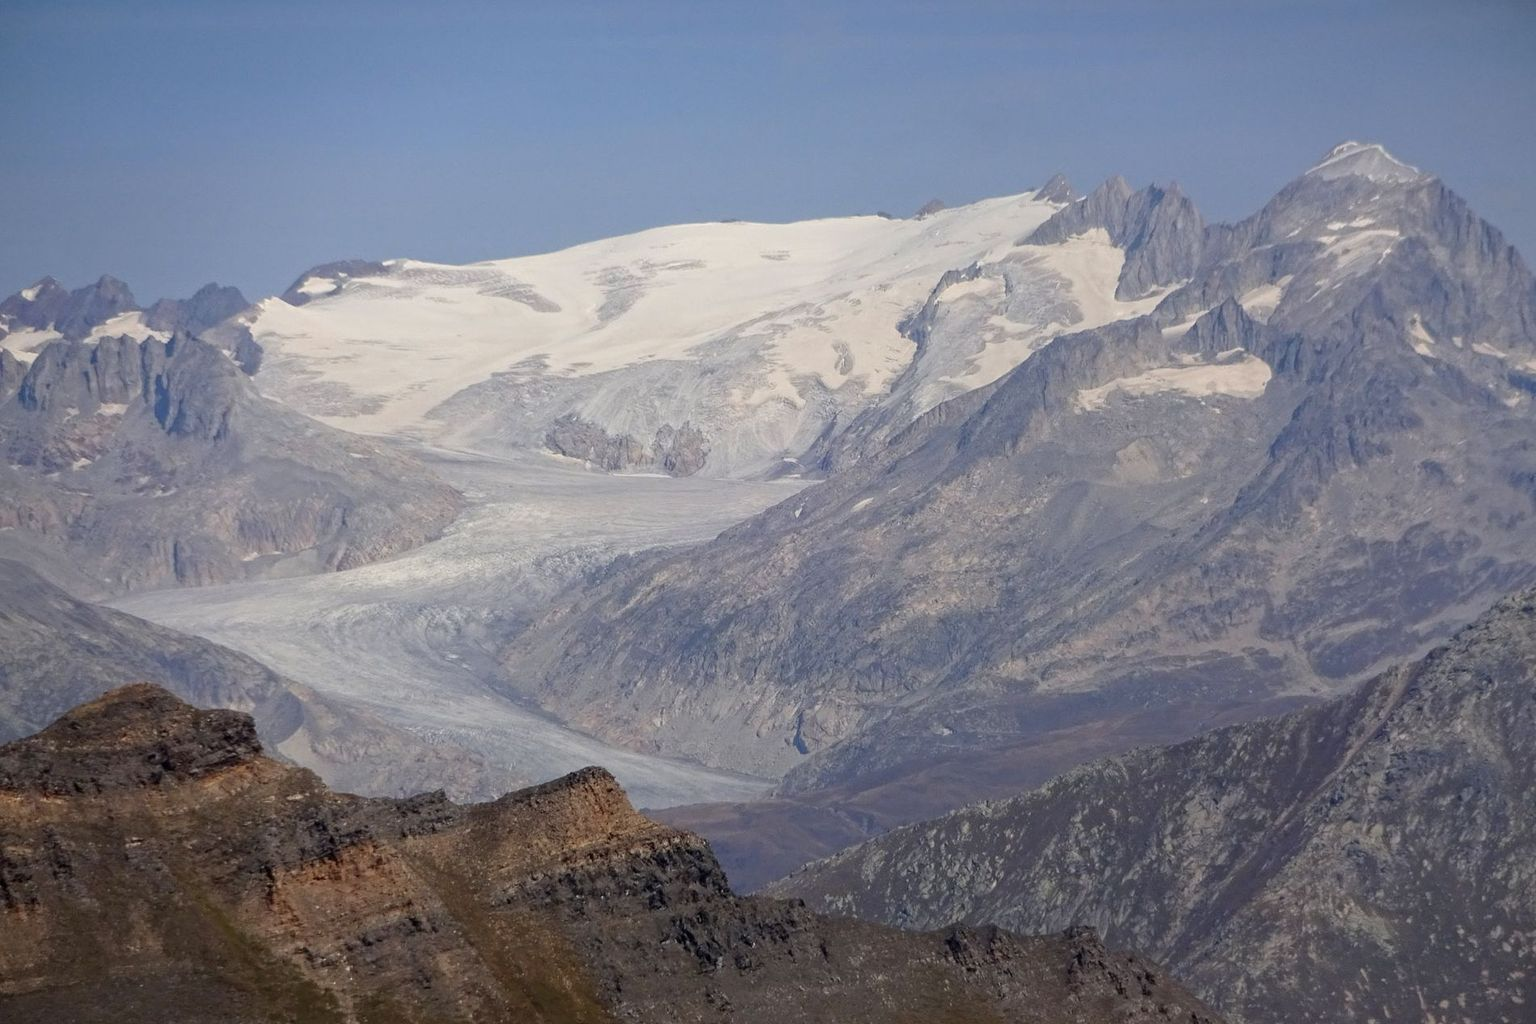 In contrast to other glaciers, Rhone Glacier (VS) also had an accumulation area this year (winter snow lasted all summer) - but this is clearly too small to keep the glacier in balance.